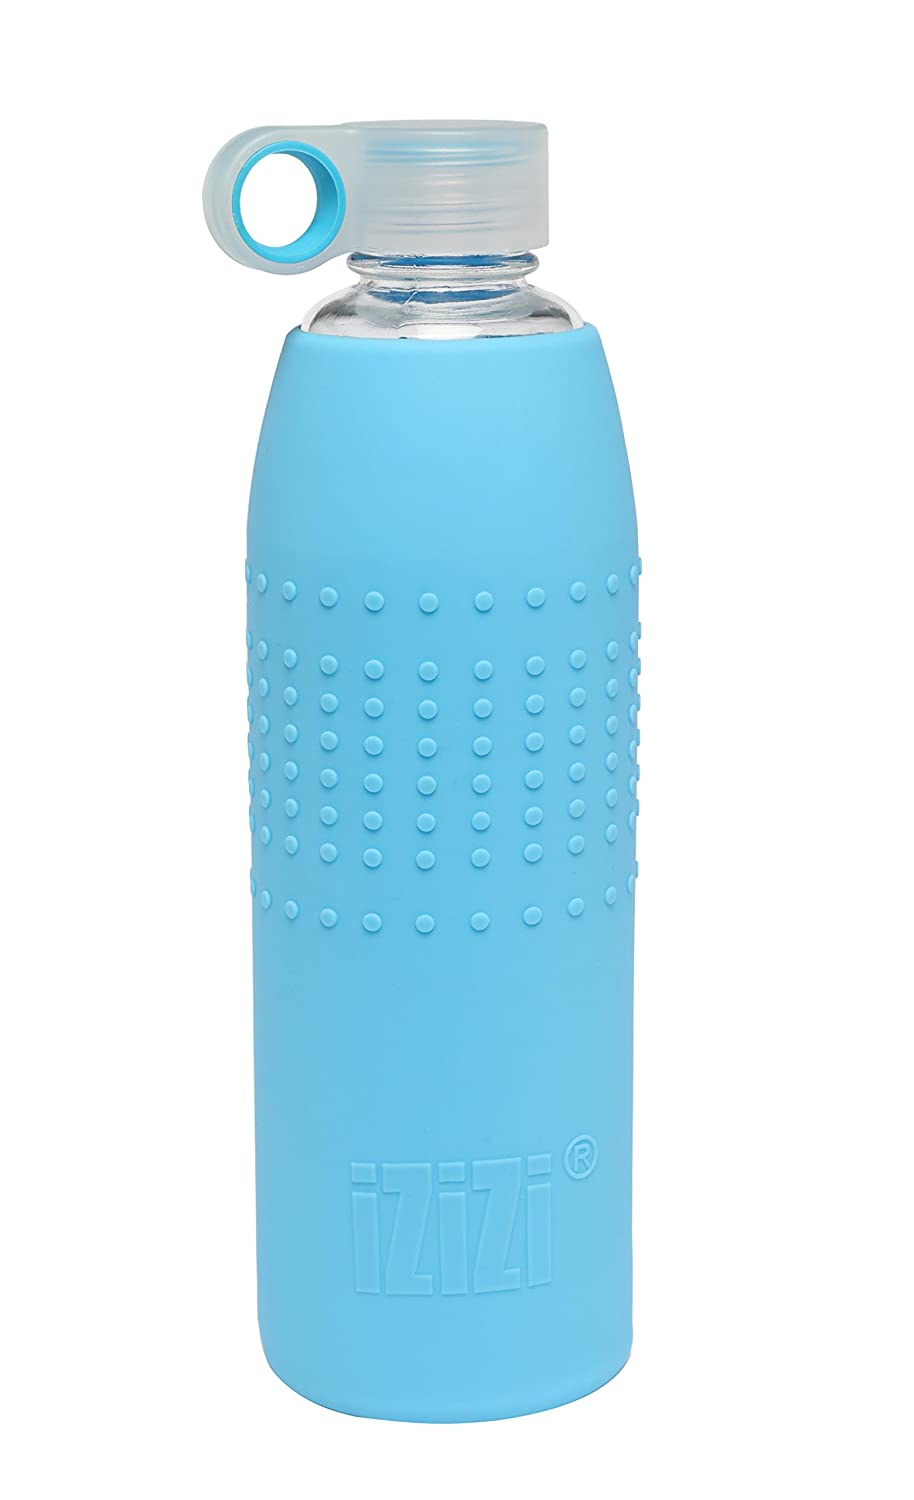 b85f141999 Izizi Glass Bottle with Silicone Sleeve, 1 liter/9 cm, Blue: Amazon.in:  Home & Kitchen